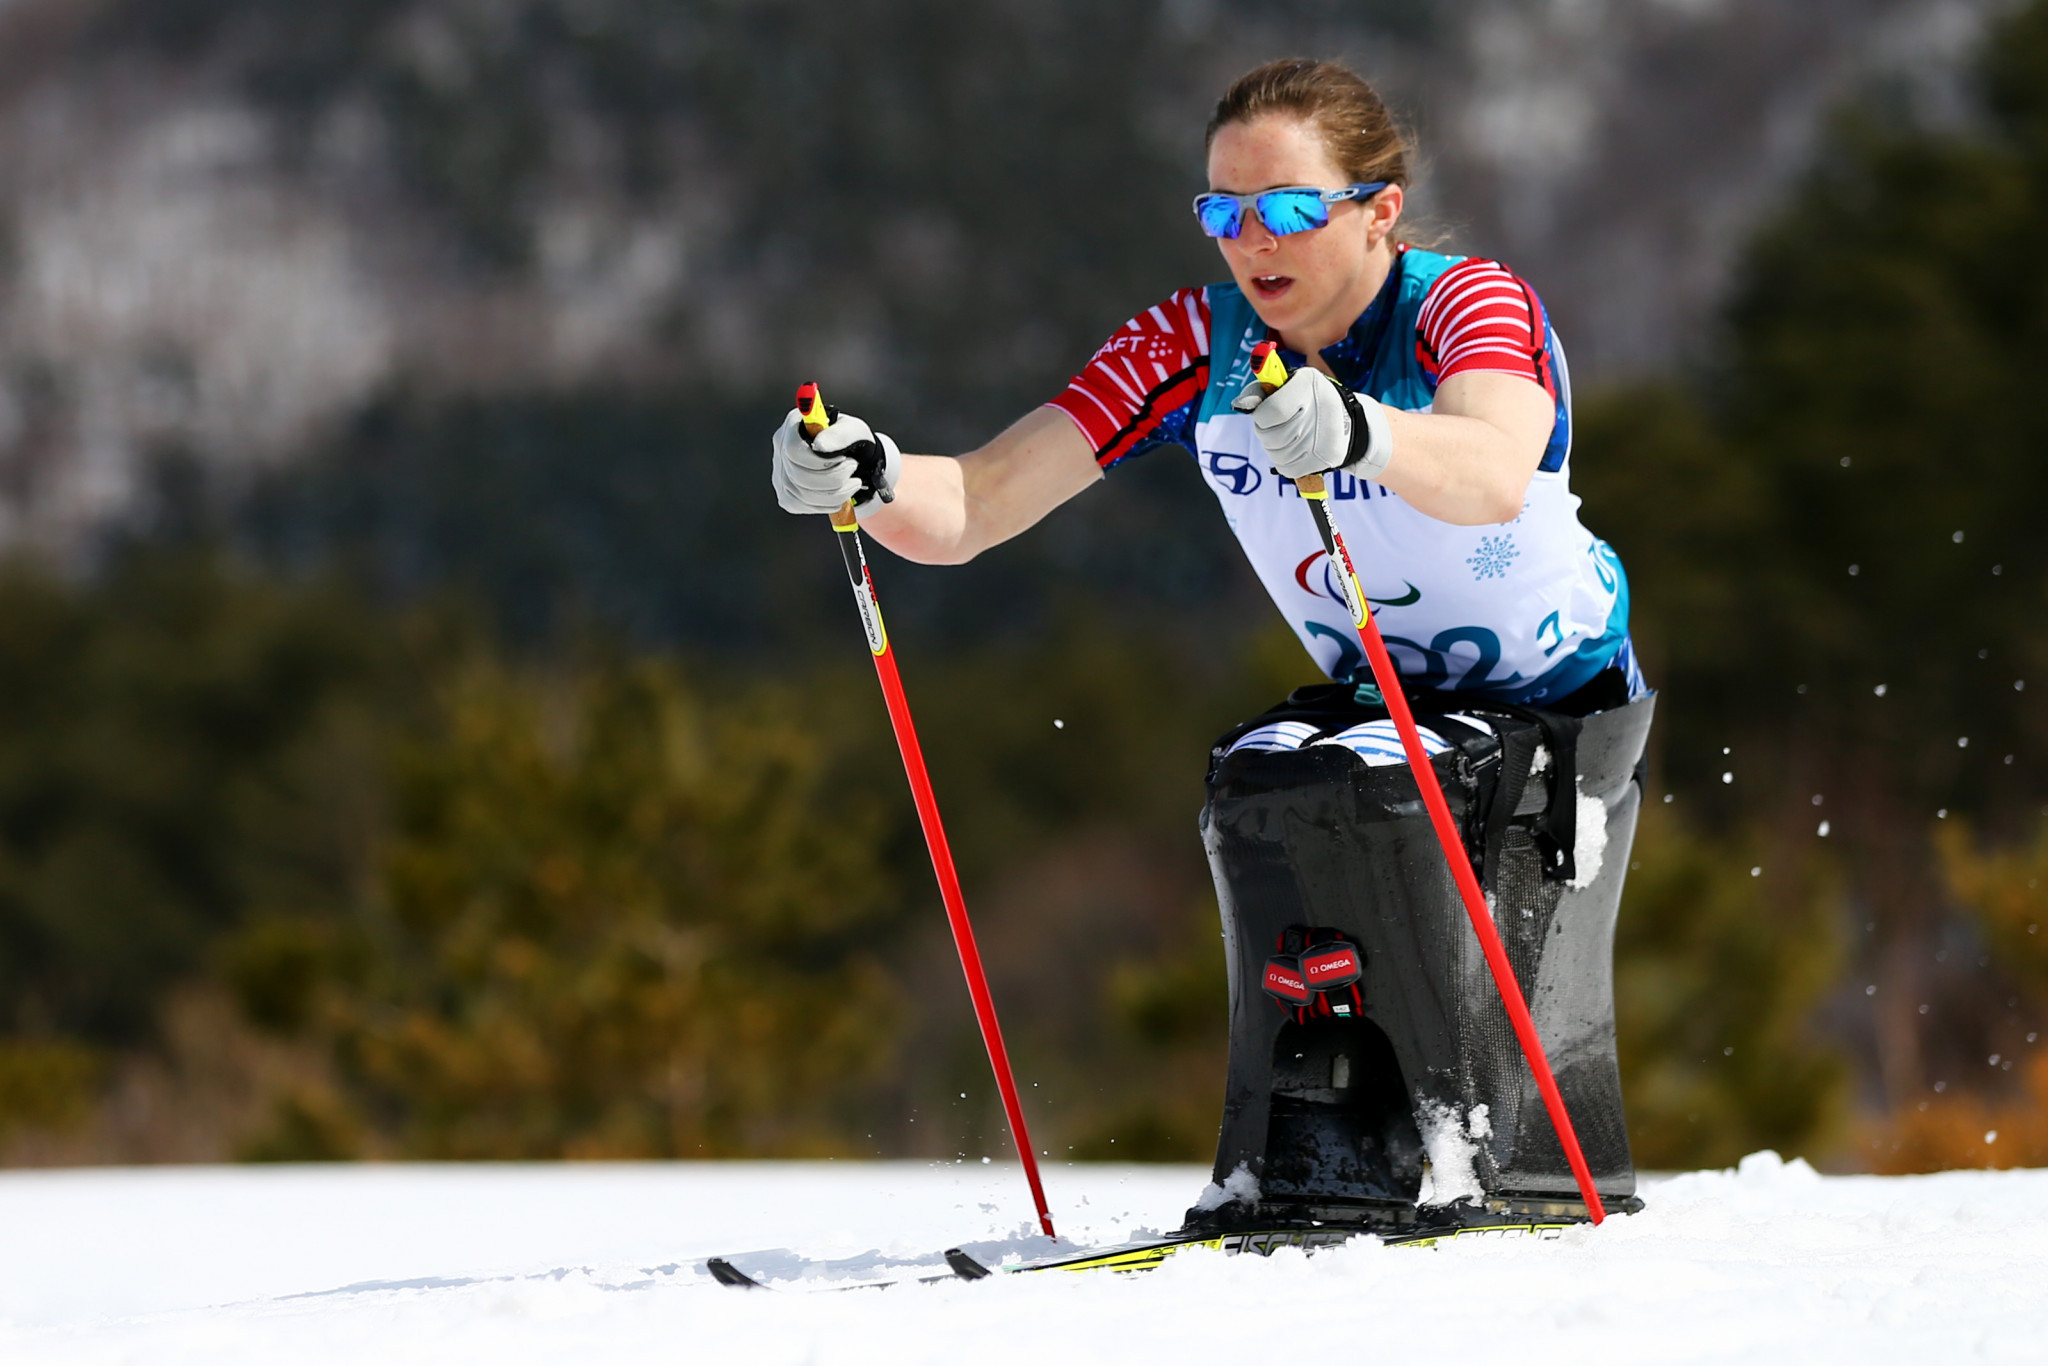 American golden pair Masters and Gretsch reach sprint final at World Para Nordic Skiing World Cup